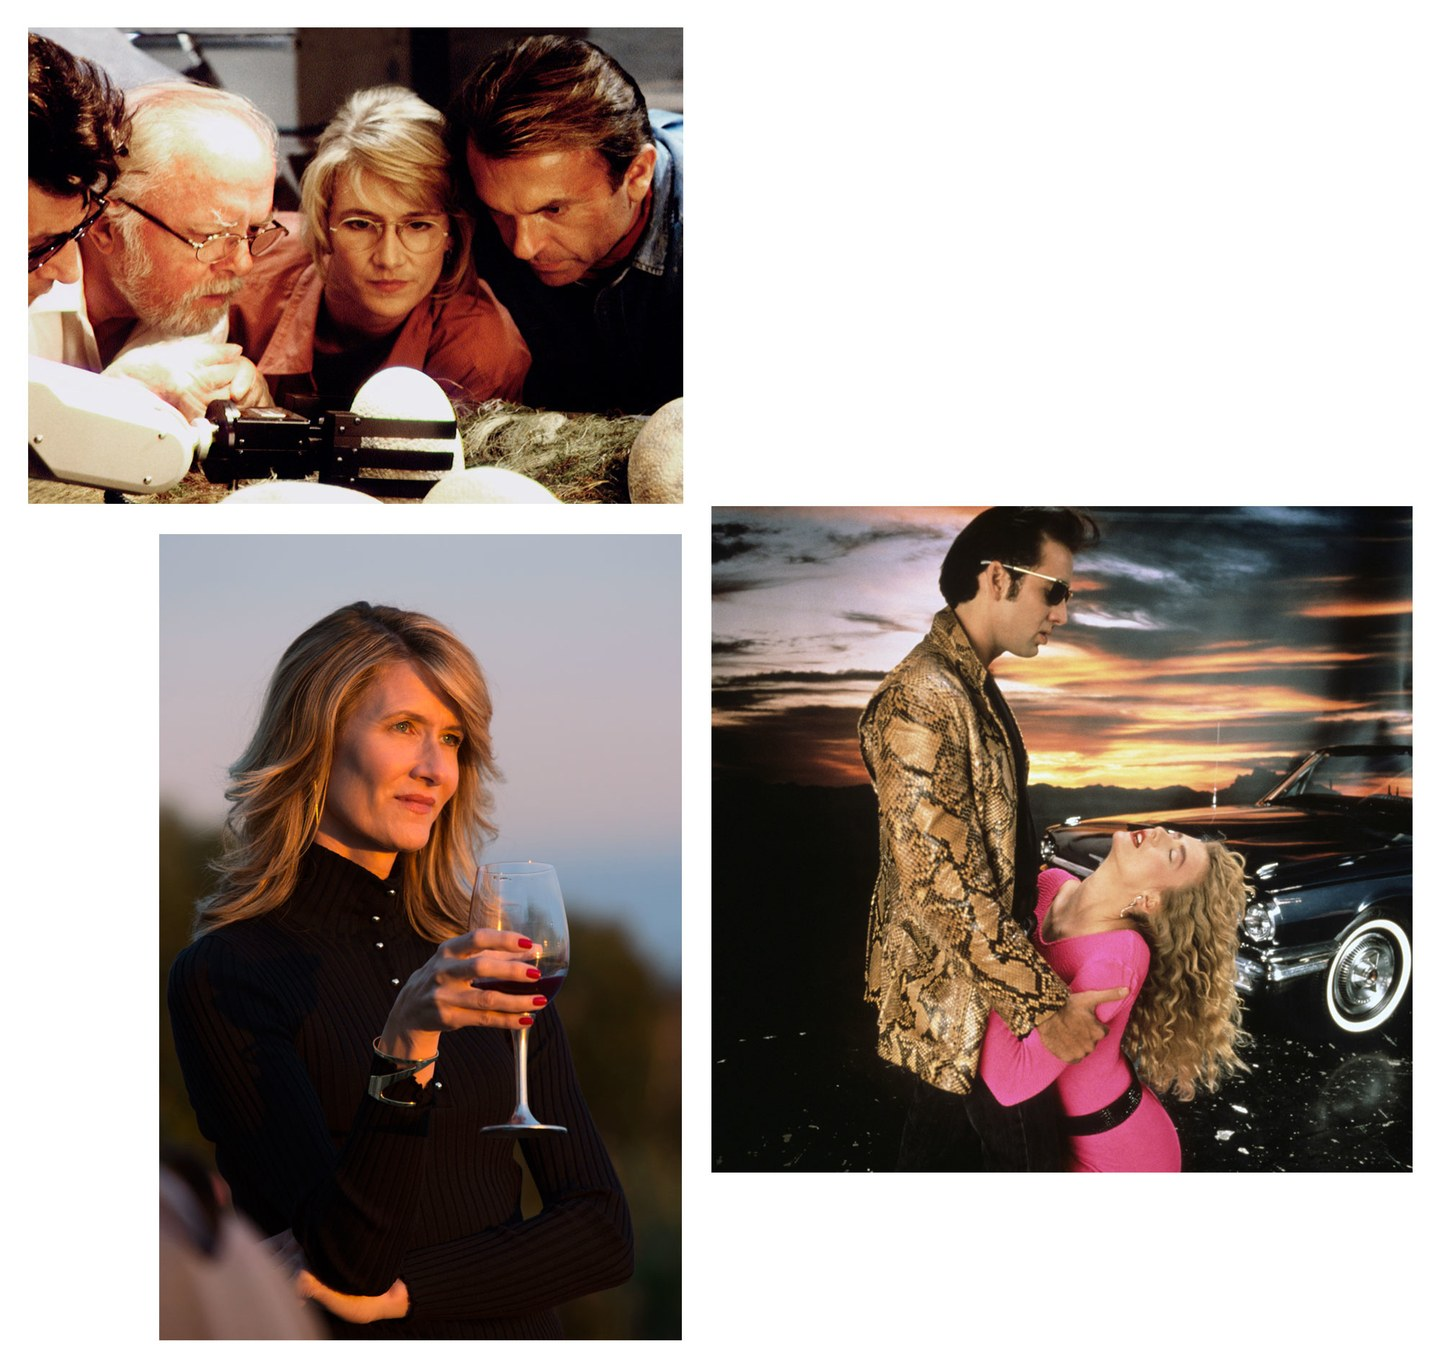 Clockwise from top, by Murray Close/Sygma/Getty Images, © Samuel Goldwyn/Everett Collection, by Hilary Bronwyn Gayle/HBO.  Laura Dern clockwise from top: with Jeff Goldblum, Richard Attenborough, and Sam Neill in 1993's  Jurassic Park ; with Nicolas Cage in 1990's  Wild at Heart ; in 2017's  Big Little Lies.